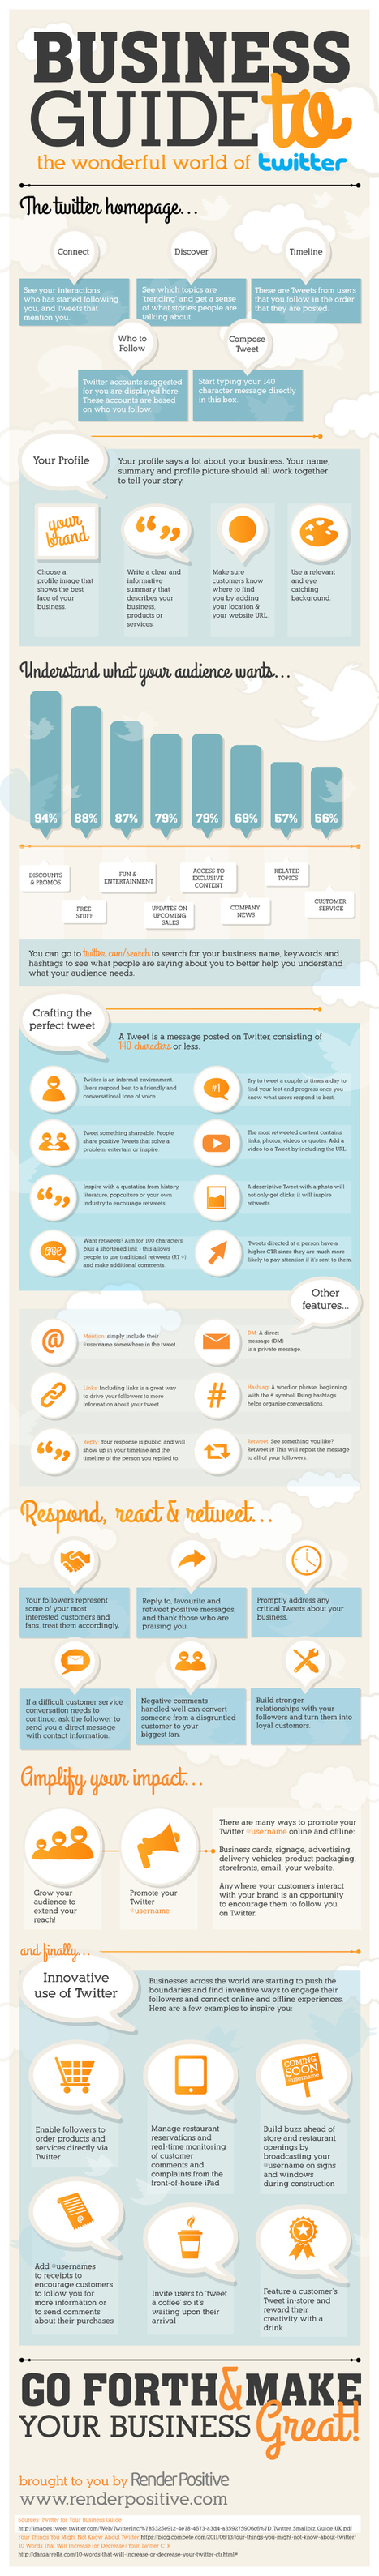 Complete Business Guide To Twitter - Infographic | Great Infographics | Scoop.it